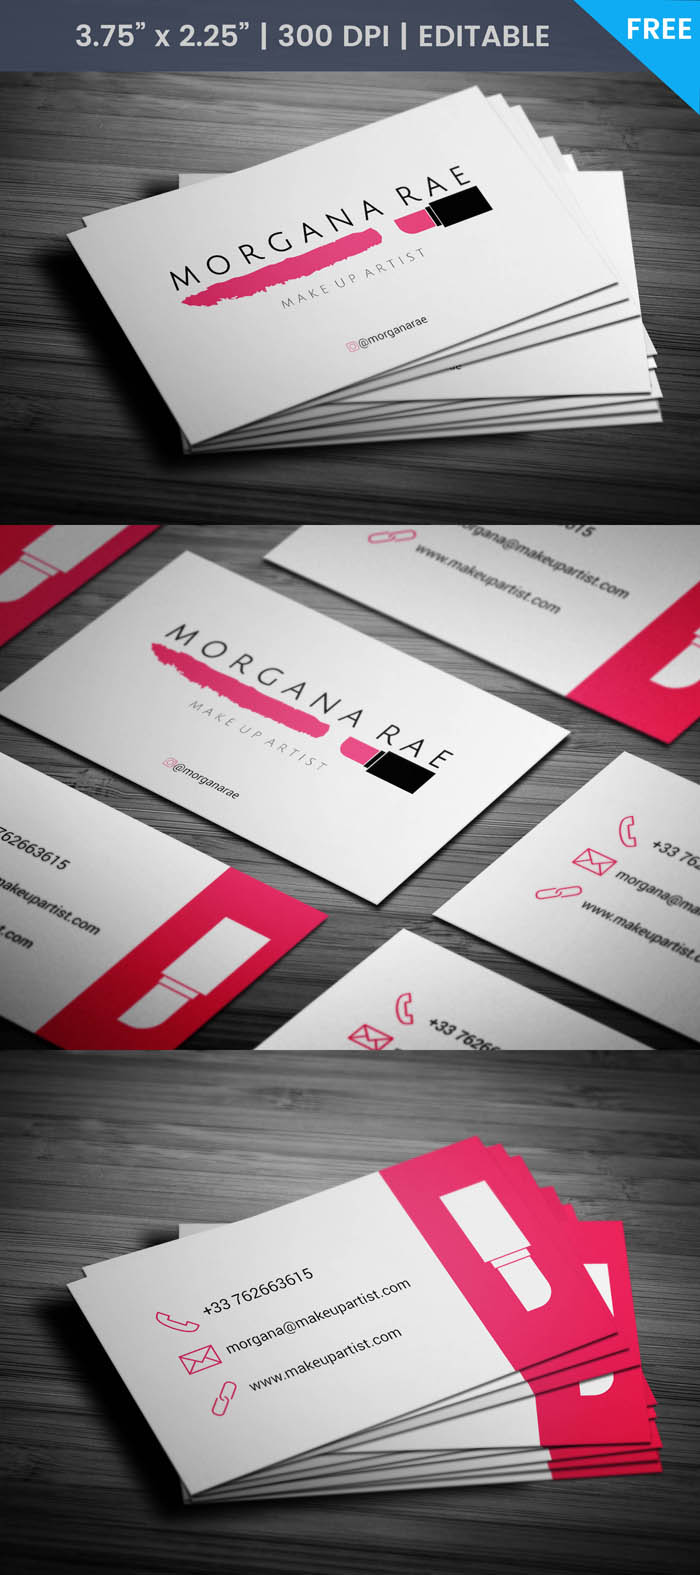 Freelance Makeup Artist Business Card - Full Preview